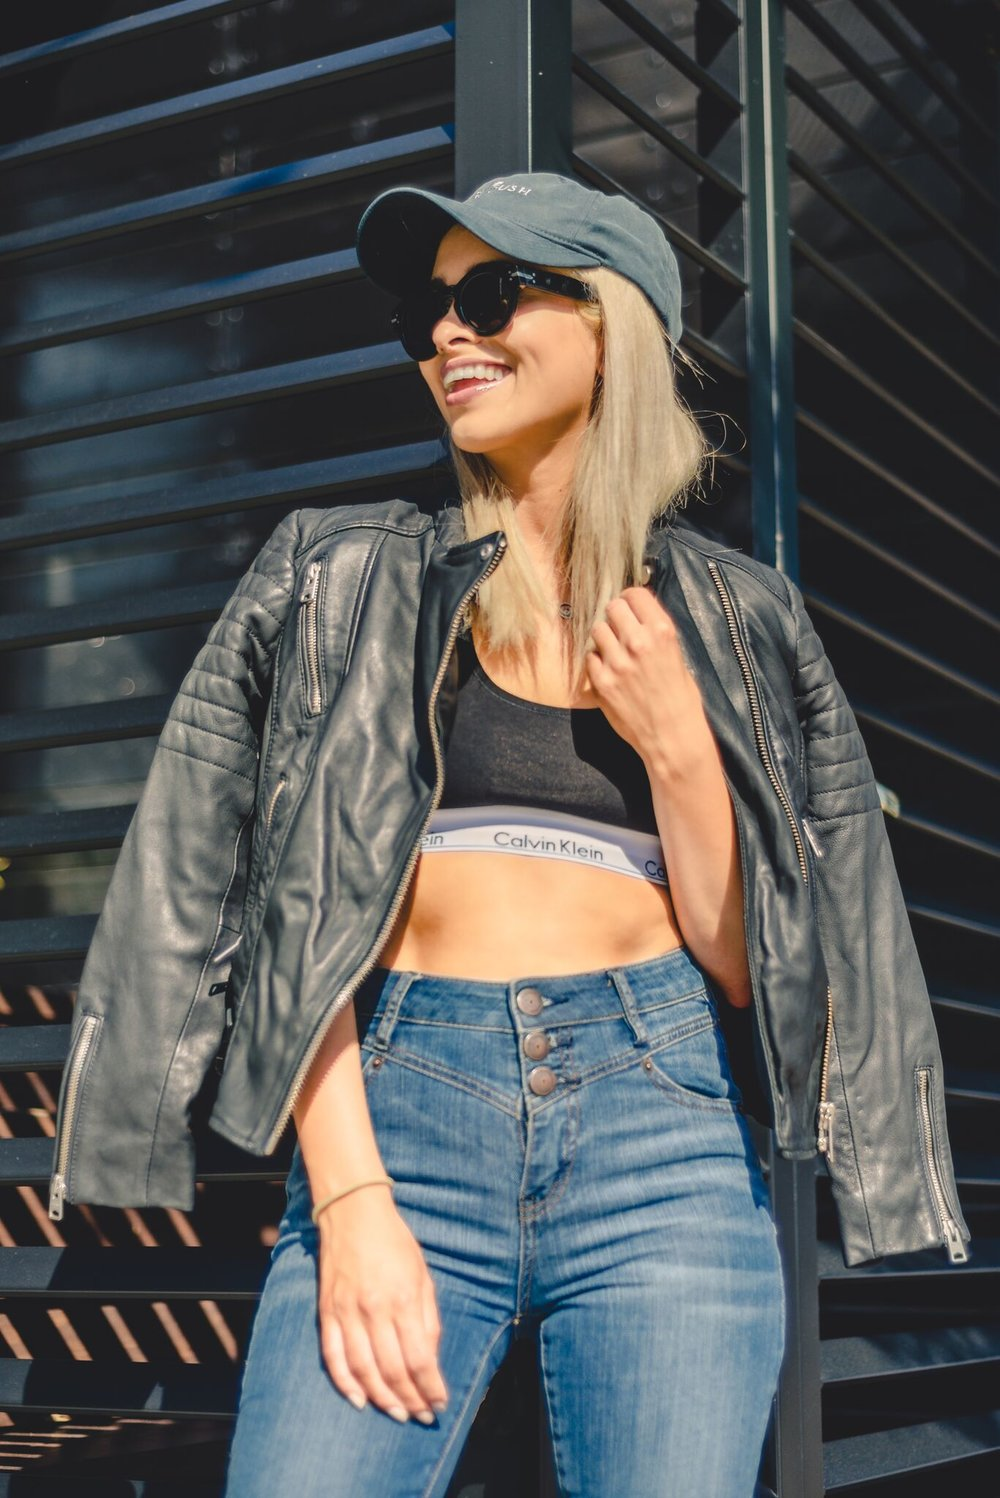 calvin klein sports bra_in my calvins_savvy javvy_la fashion blogger_nyc fashion blogger_converse sneakers_high waisted jeans_celine sunglasses_casual street style_all saints jacket_bcbg_selwyn ramos_fashion blogger_santa monica_la stylist